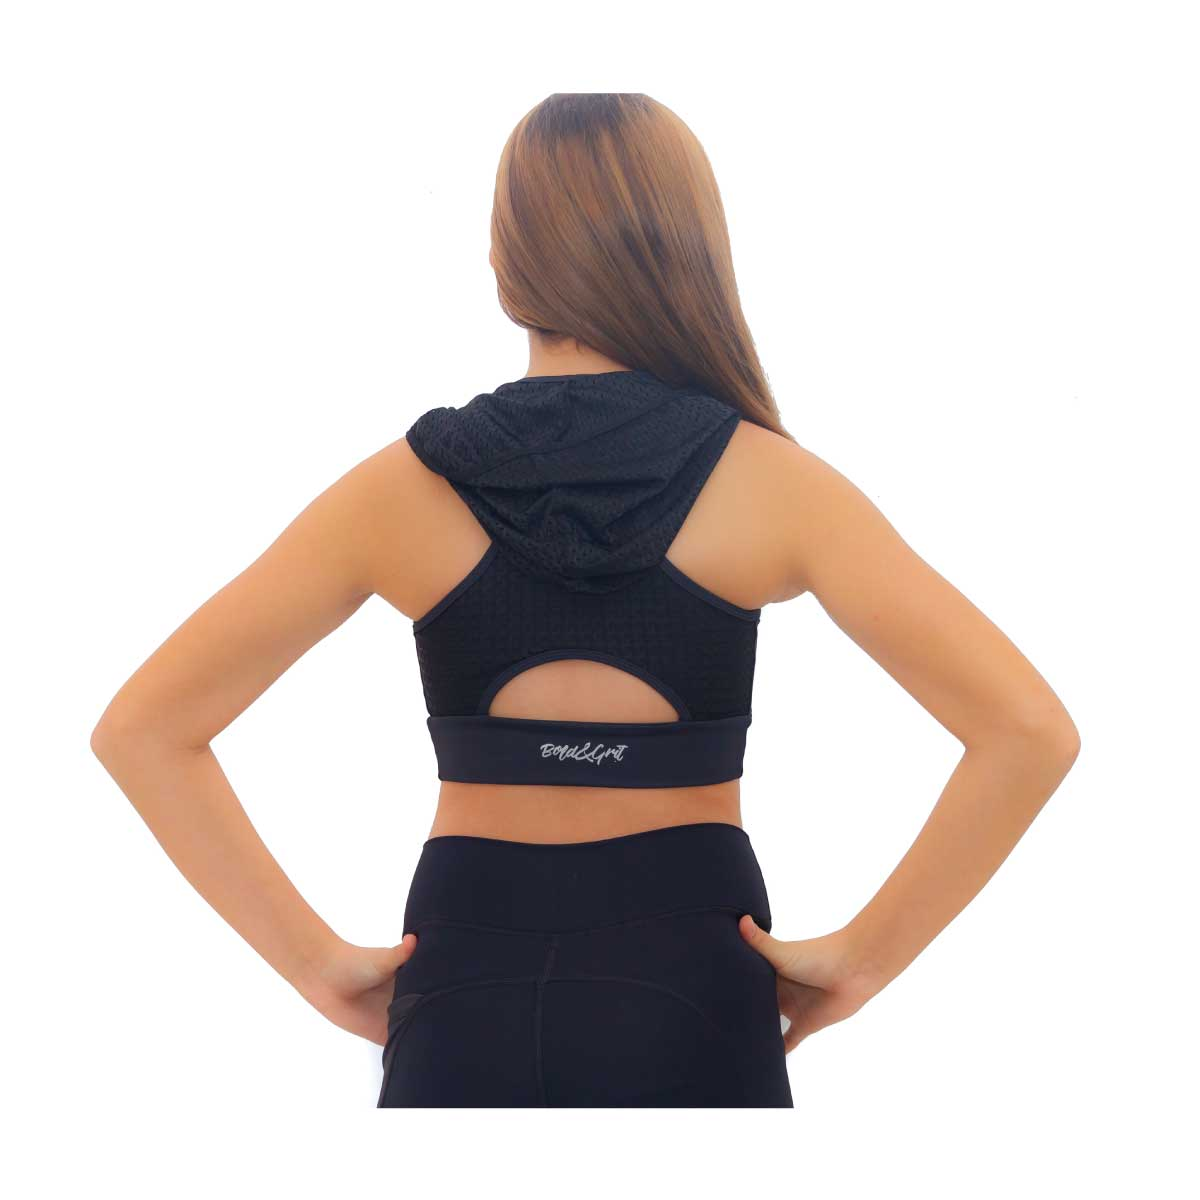 GIRL'S BELIEVE HOODIE SPORTS BRA